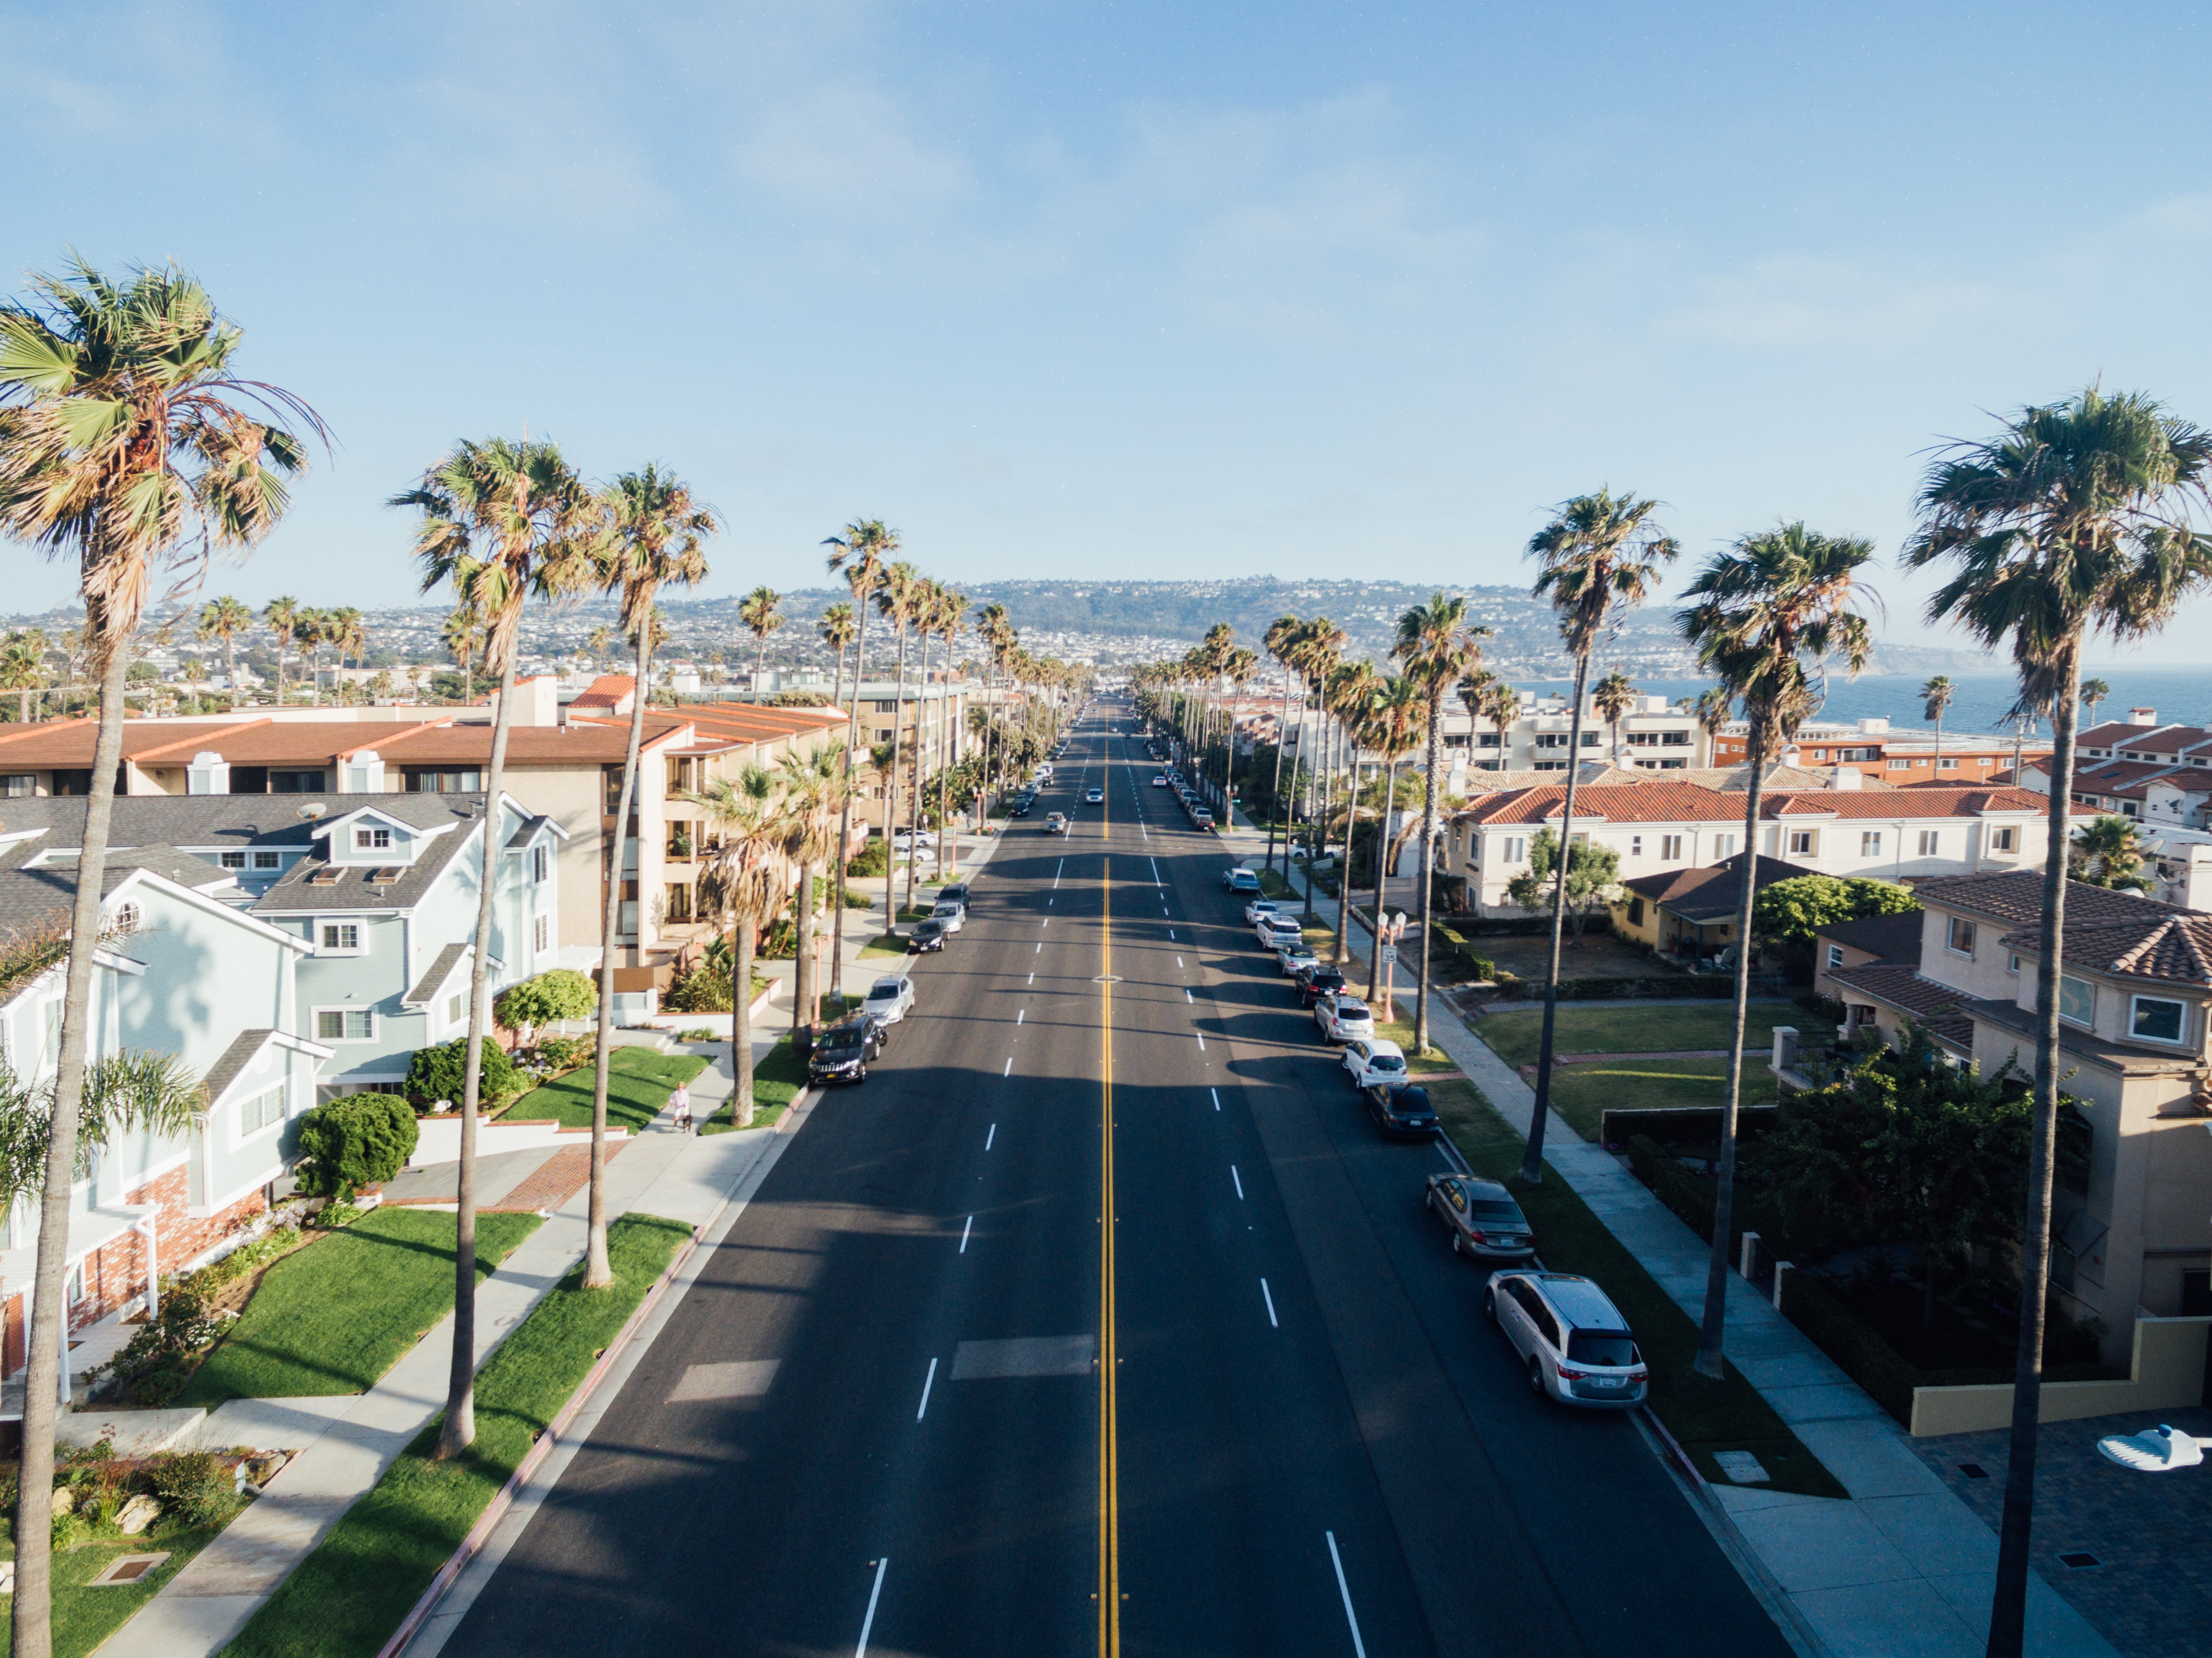 Drone view of palm tree avenue at South Redondo, Redondo Beach, California, United States